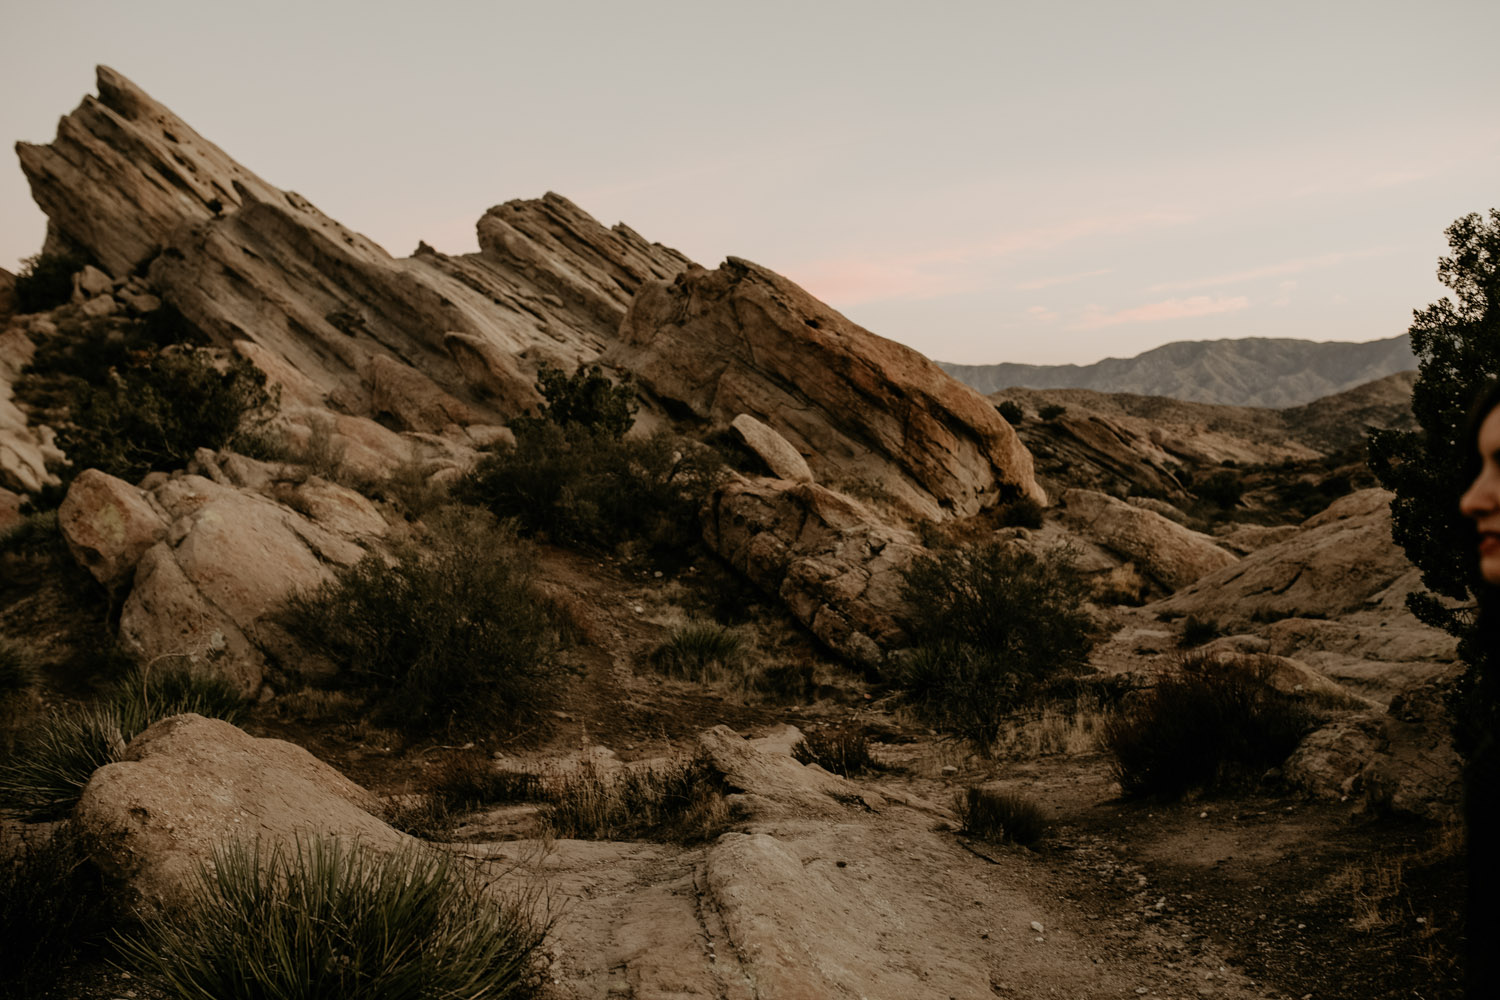 Vasquez rocks engagement photos-10.jpg